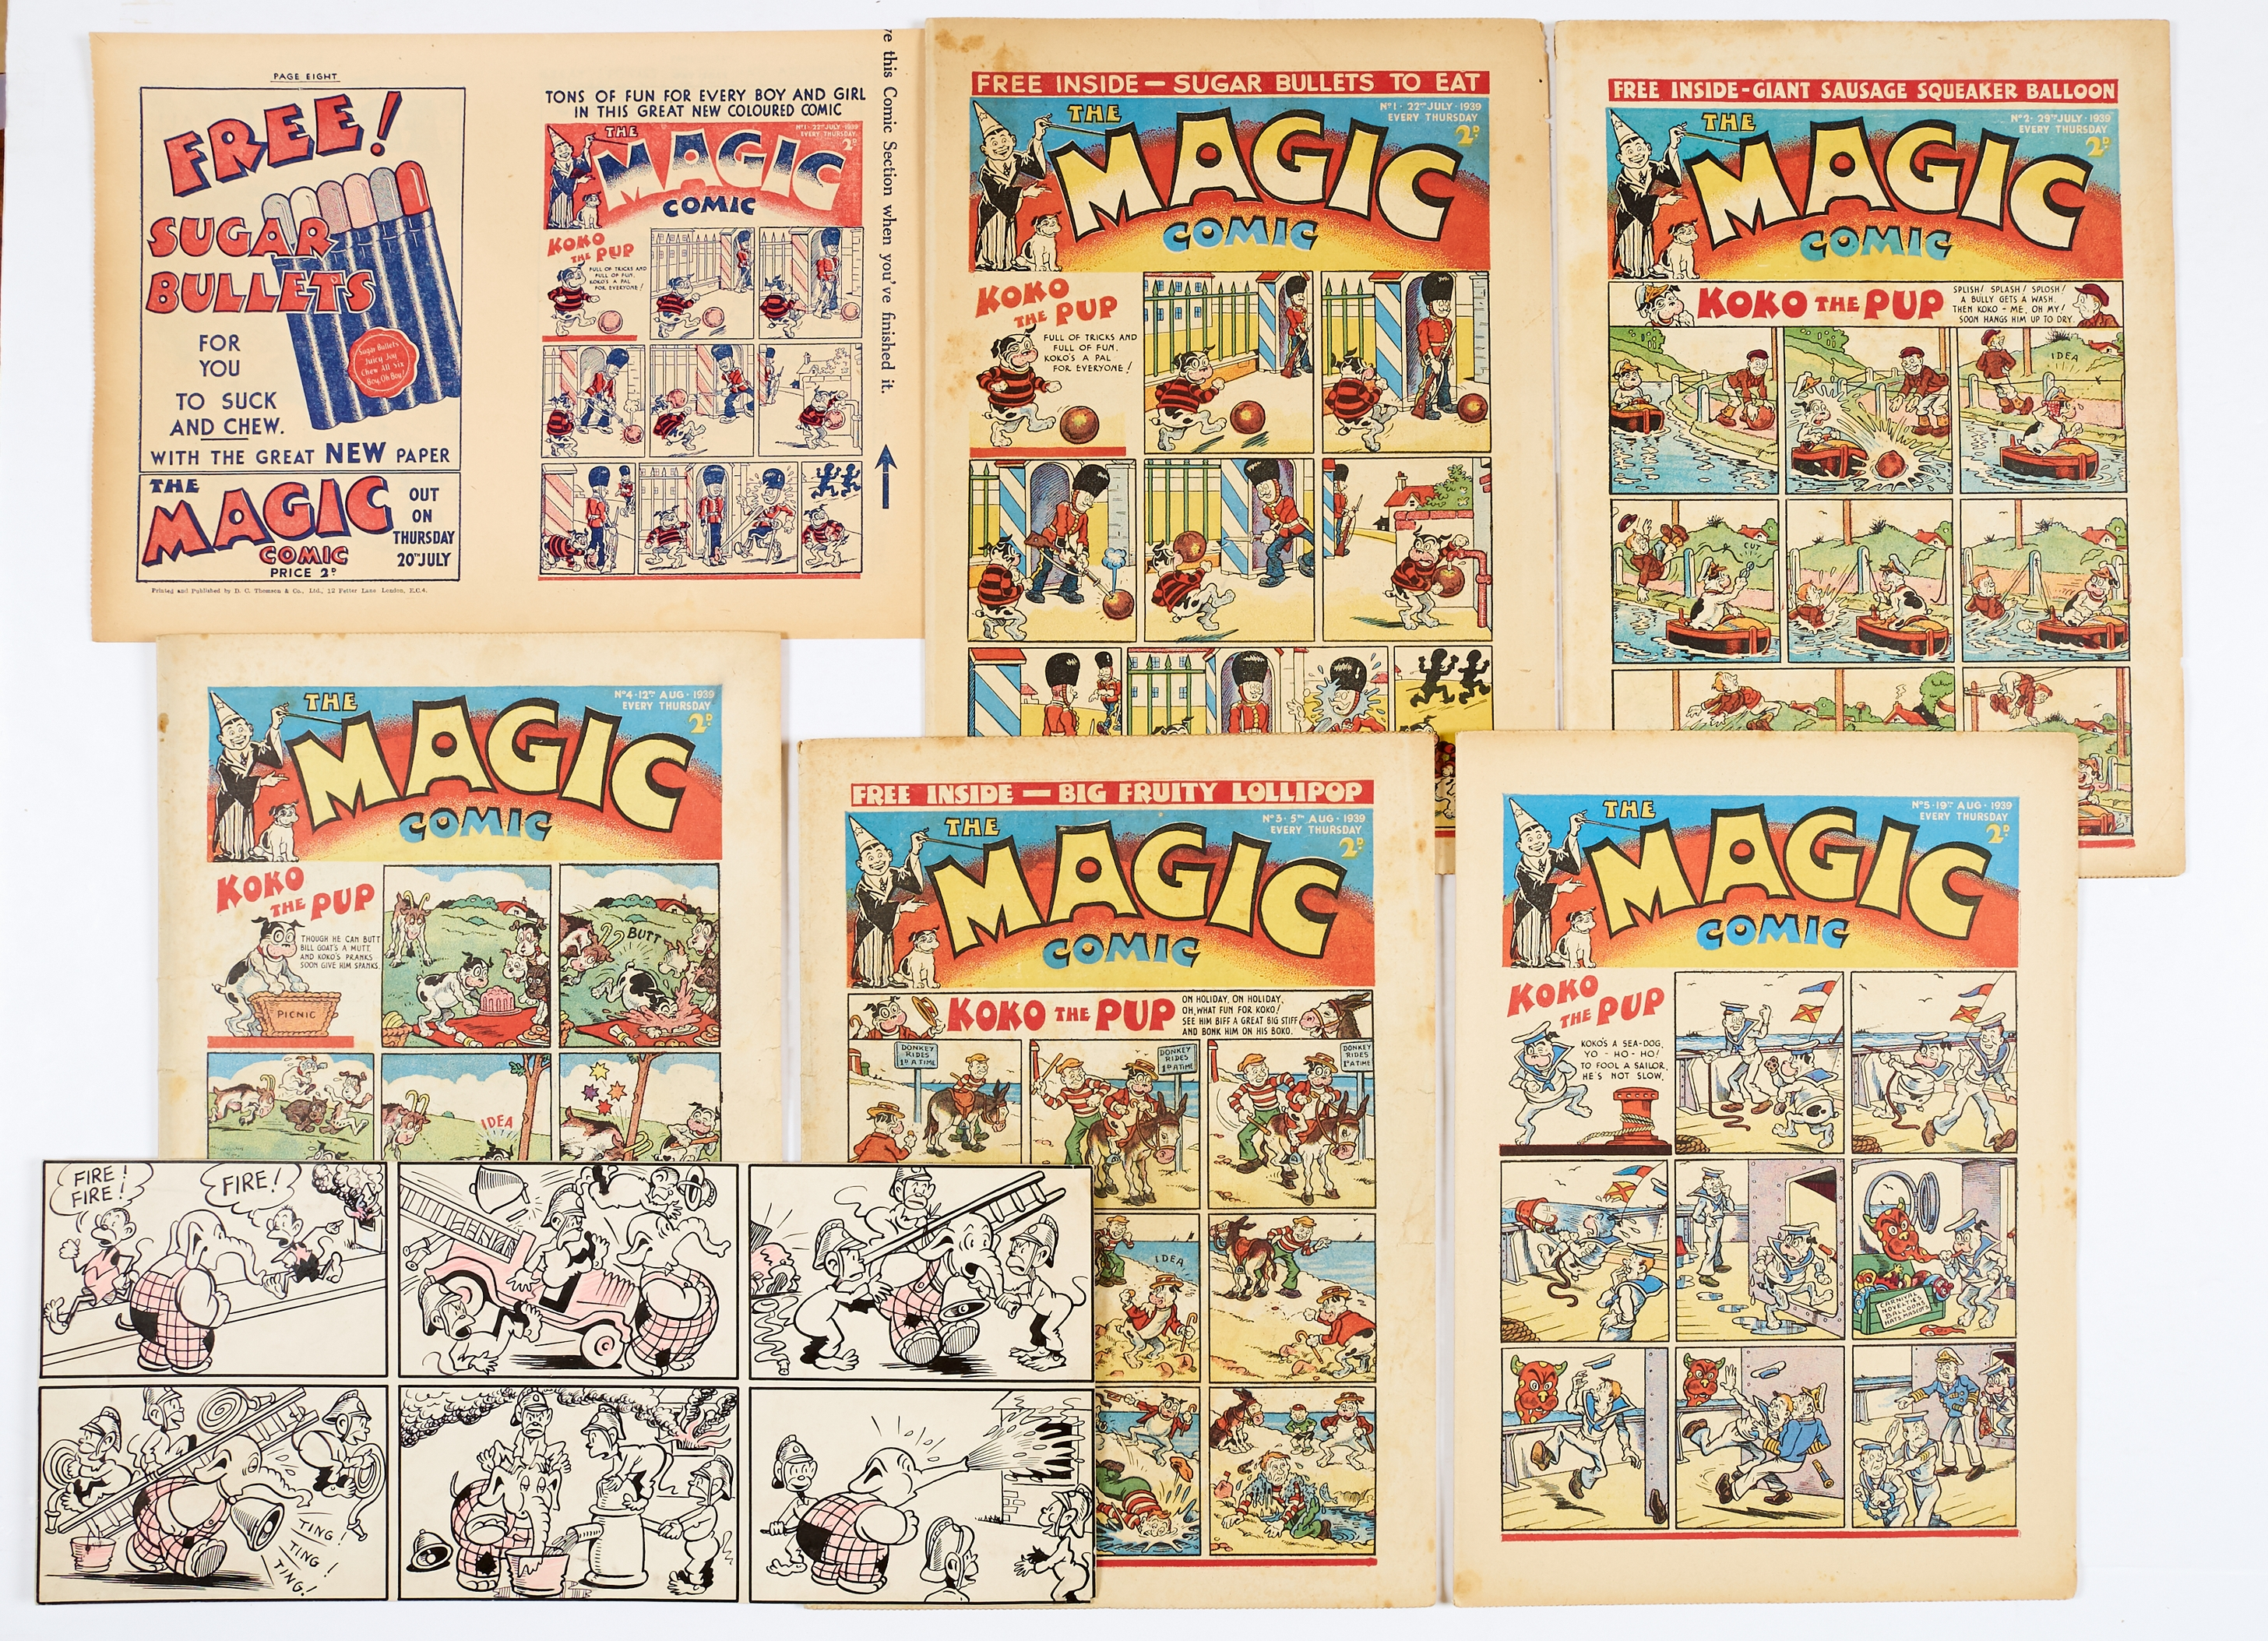 Lot 20 - Magic Comic (1939) 1-5. With Magic comic promotional flyer for No 1 (an 8pg mini comic in its own